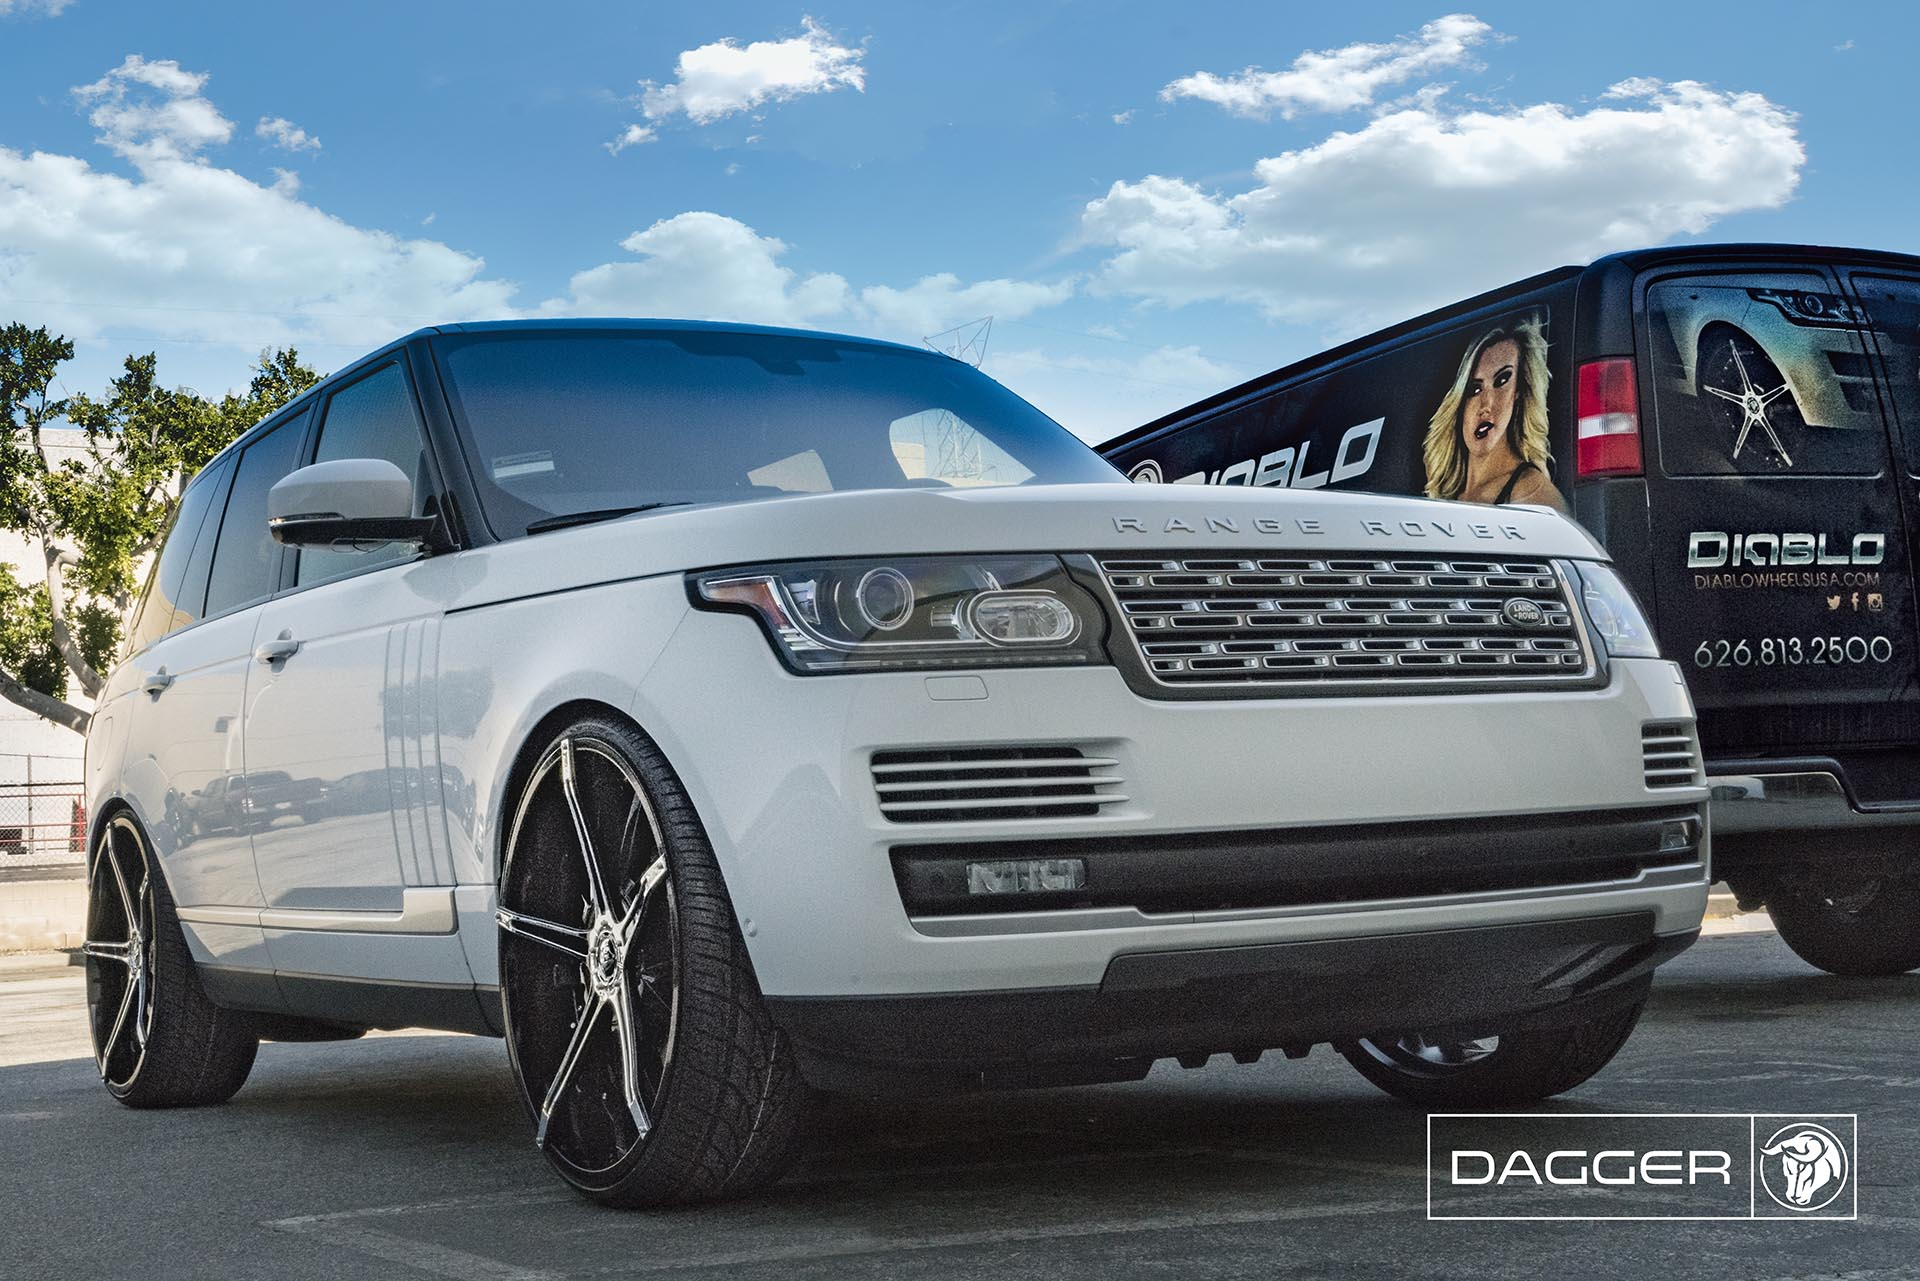 Black Diablo Dagger Wheels on a Land Rover Range Rover